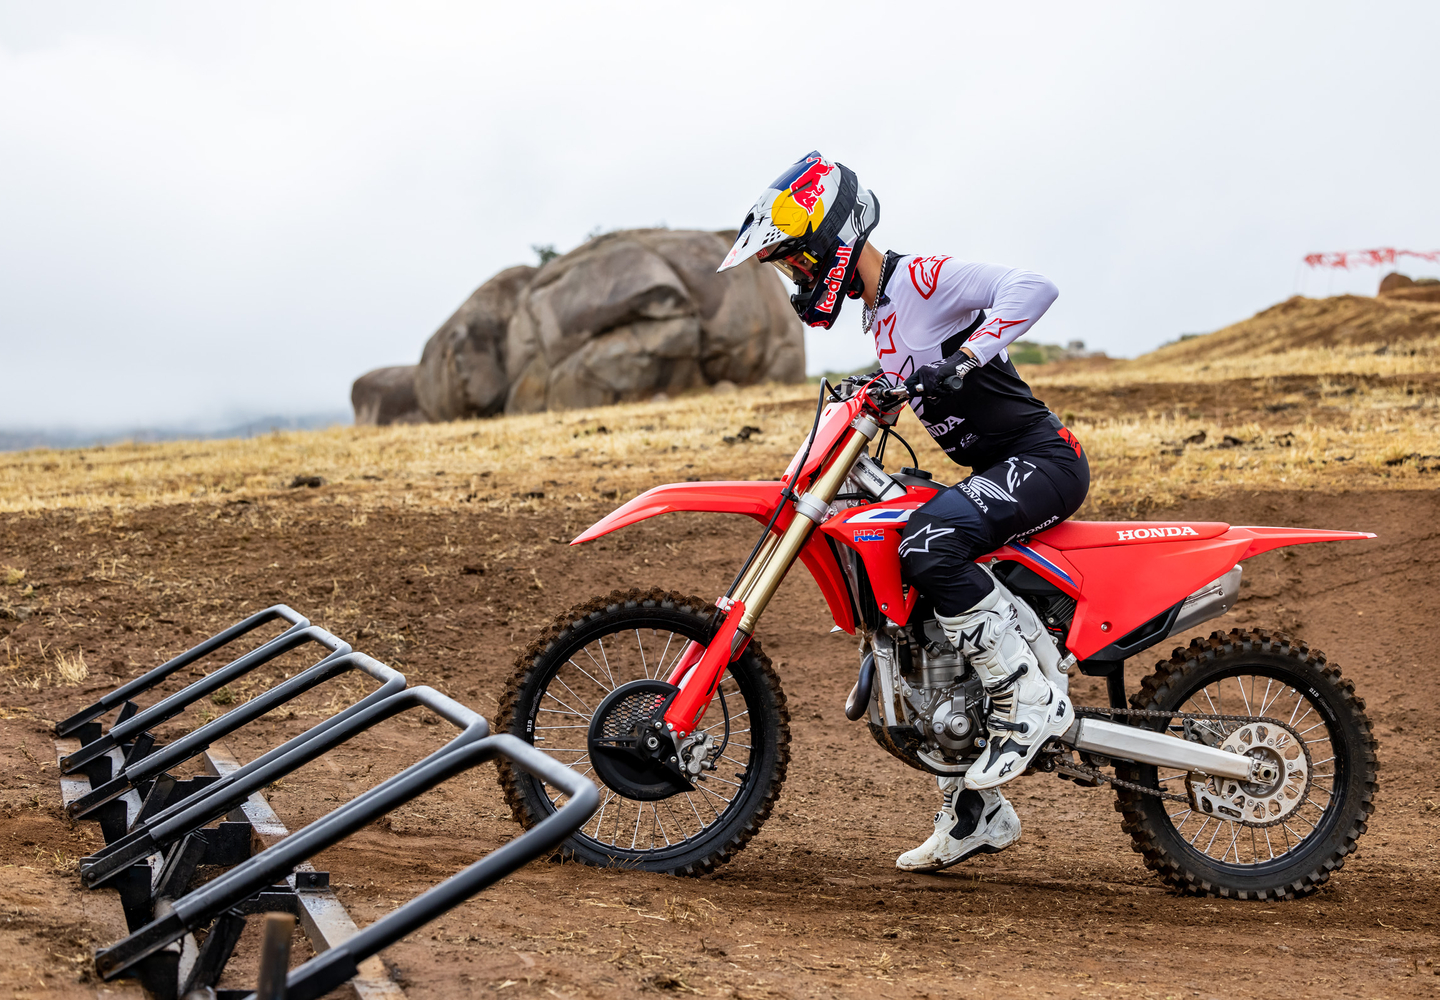 honda crf250r n competition off road